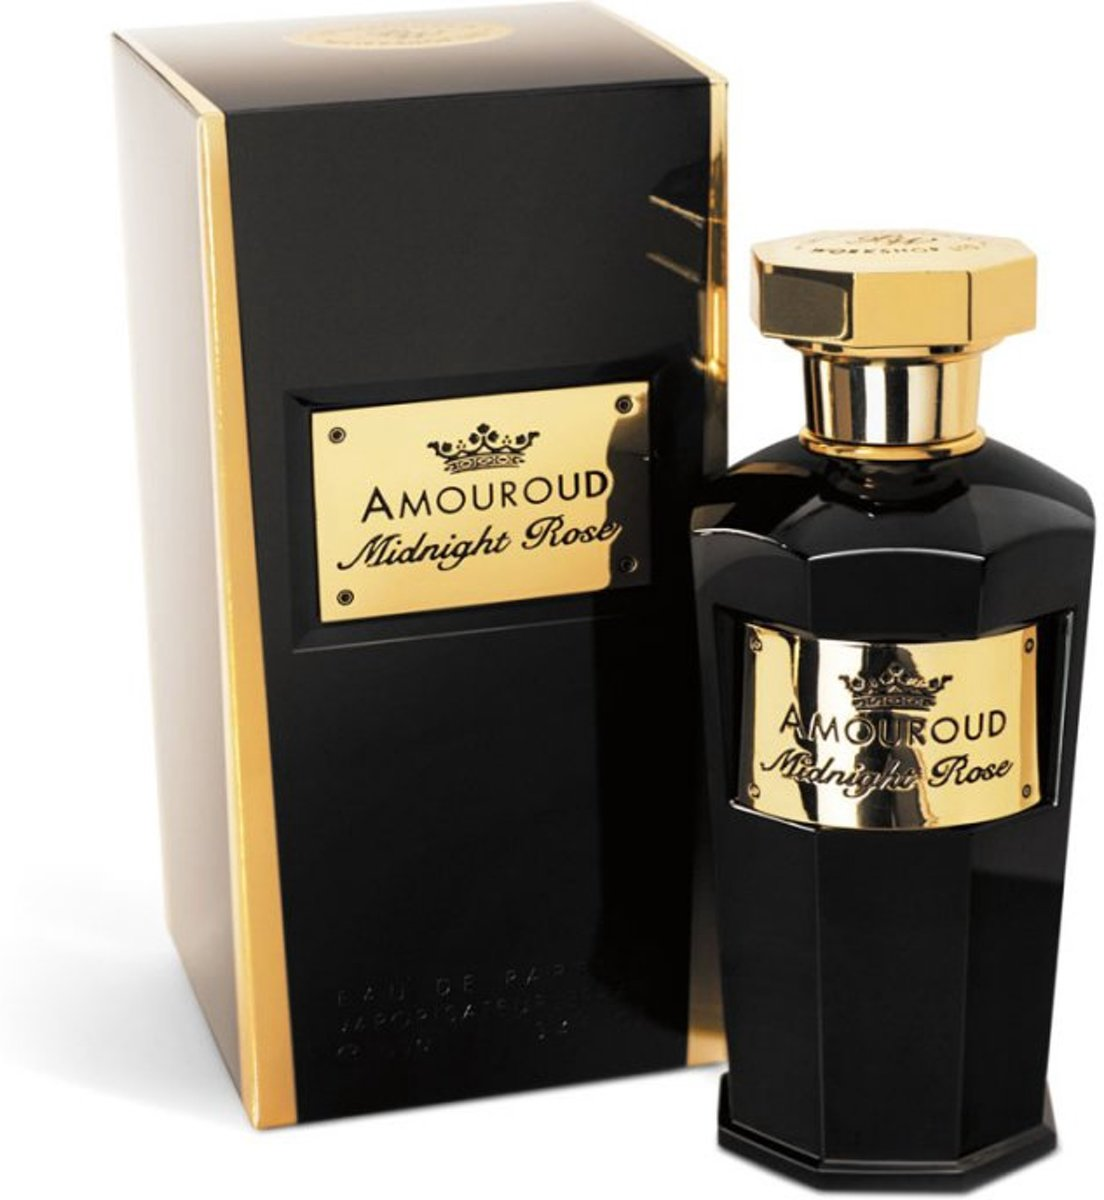 Amouroud Midnight Rose  Eau de Parfum Spray 100 ml